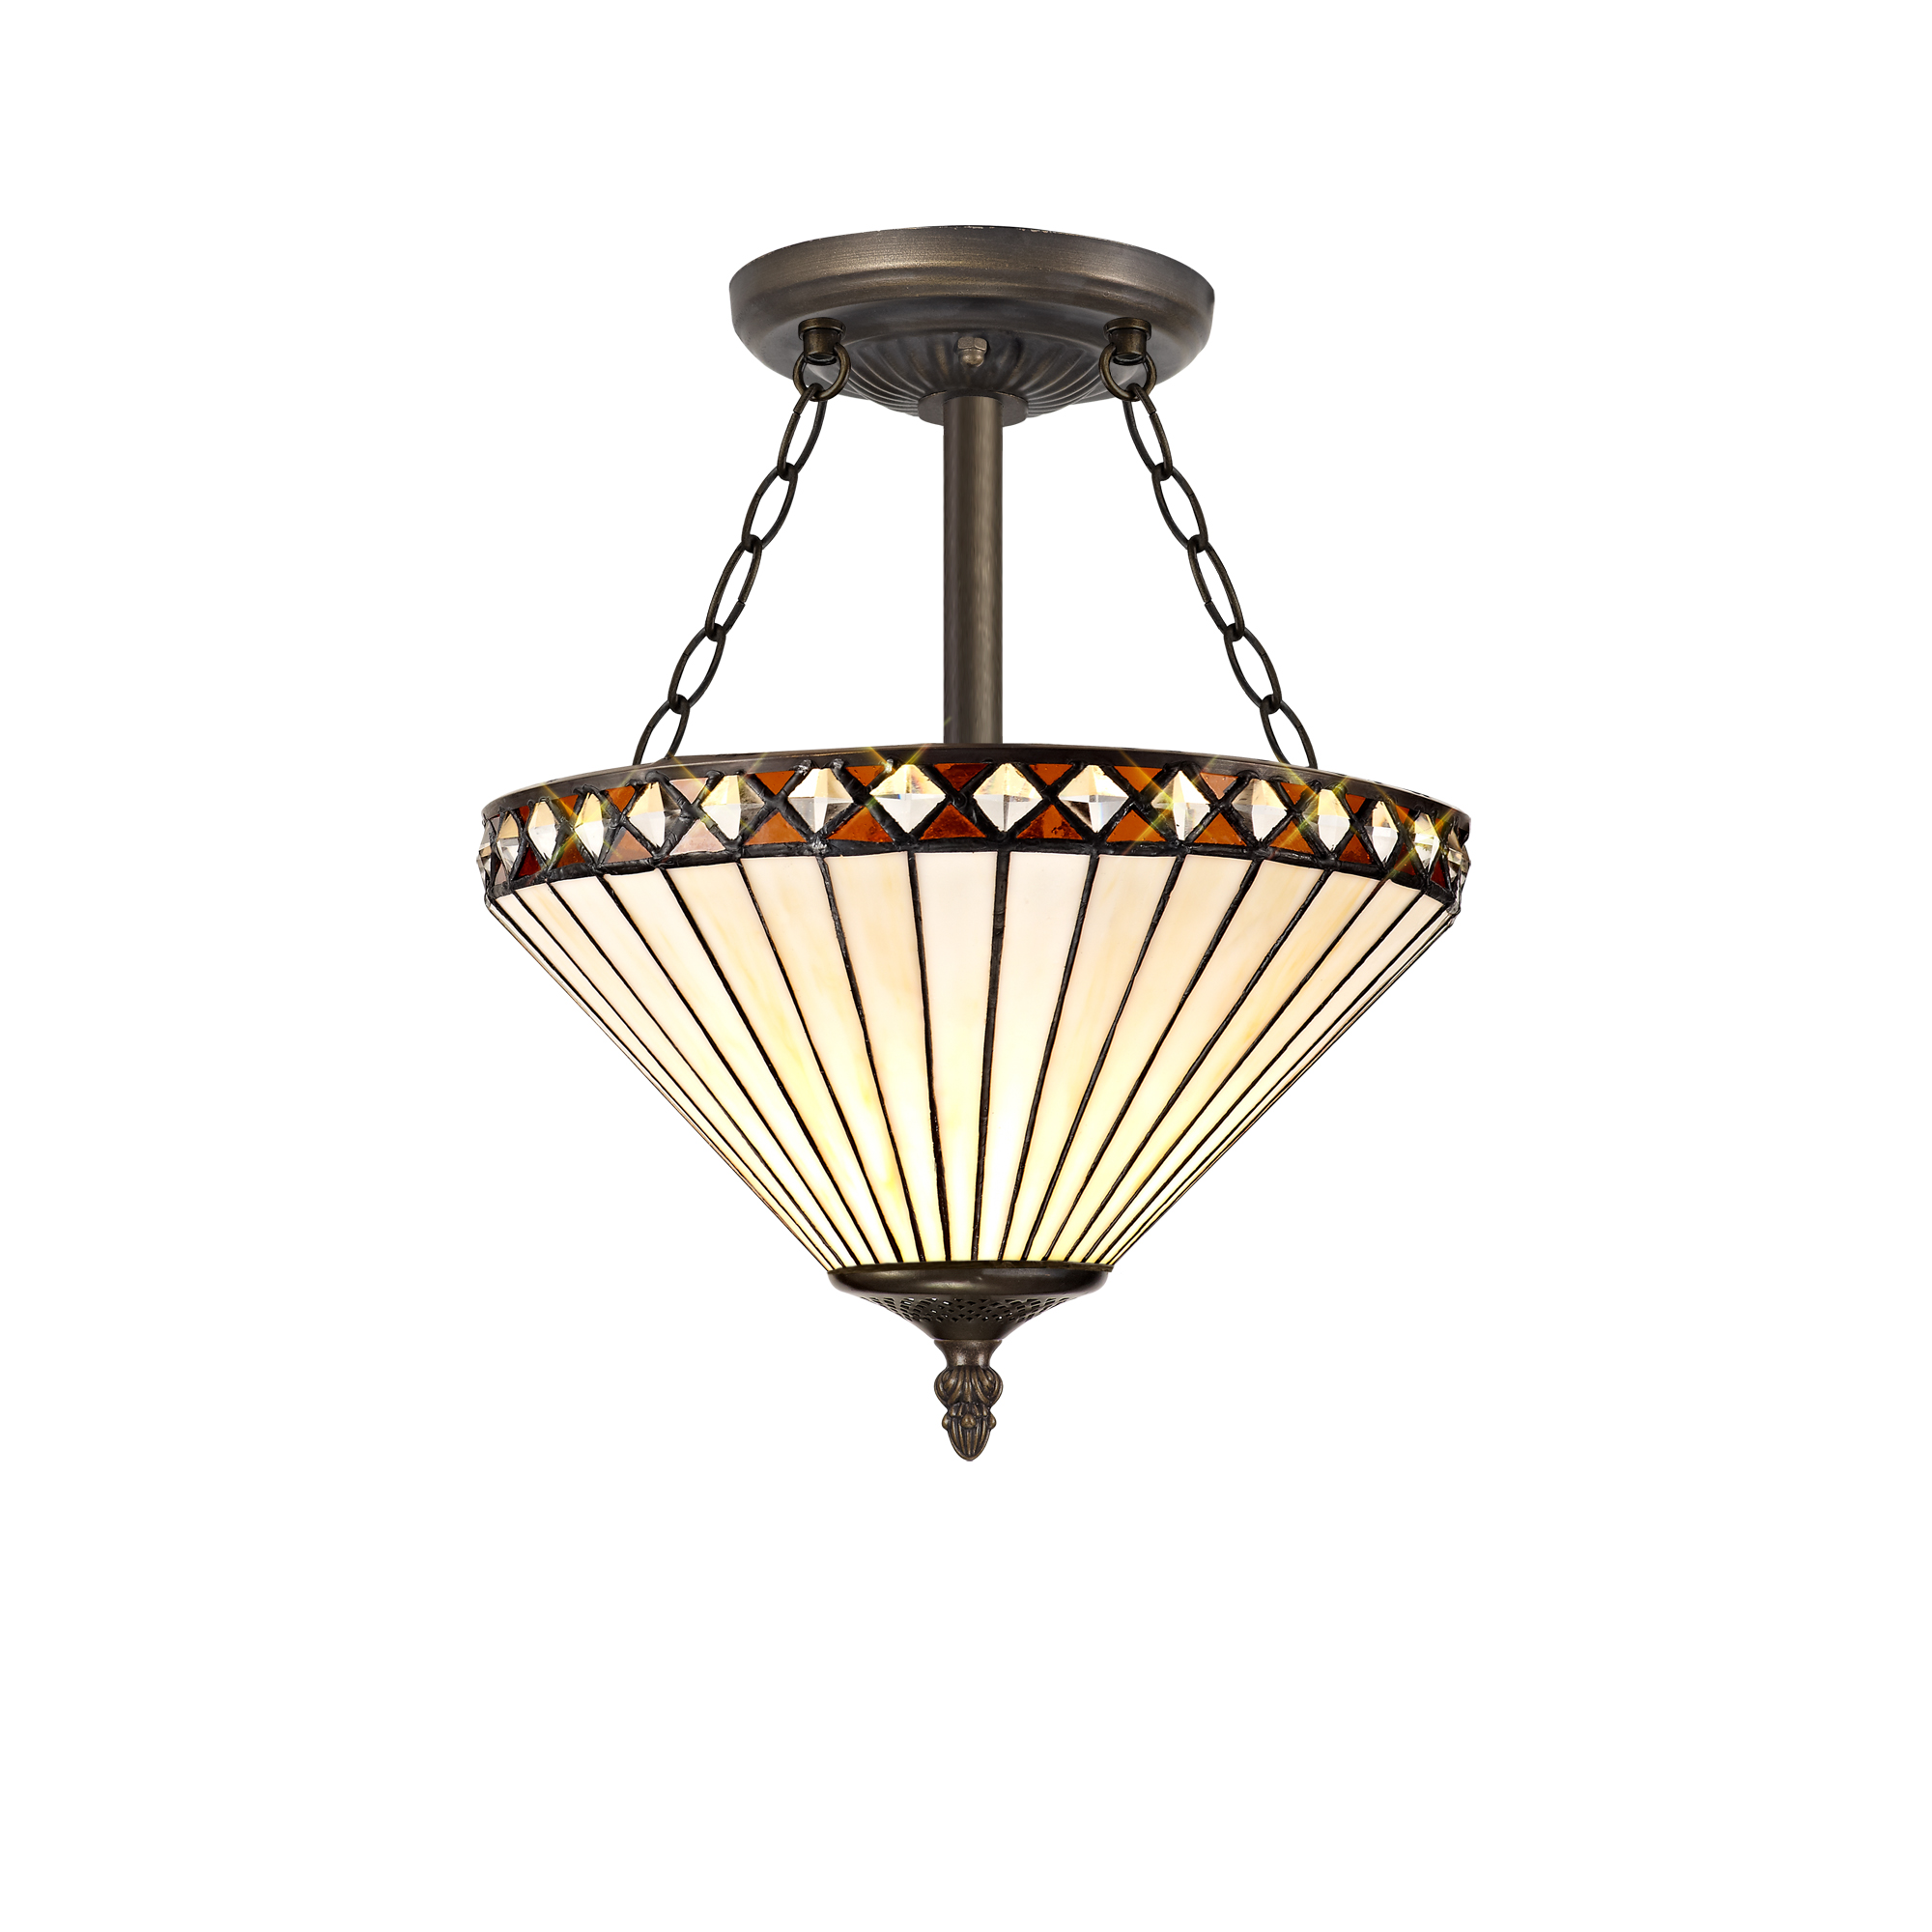 3 Light Semi Ceiling E27 With 30cm Tiffany Shade, Amber/C/Crystal/Aged Antique Brass